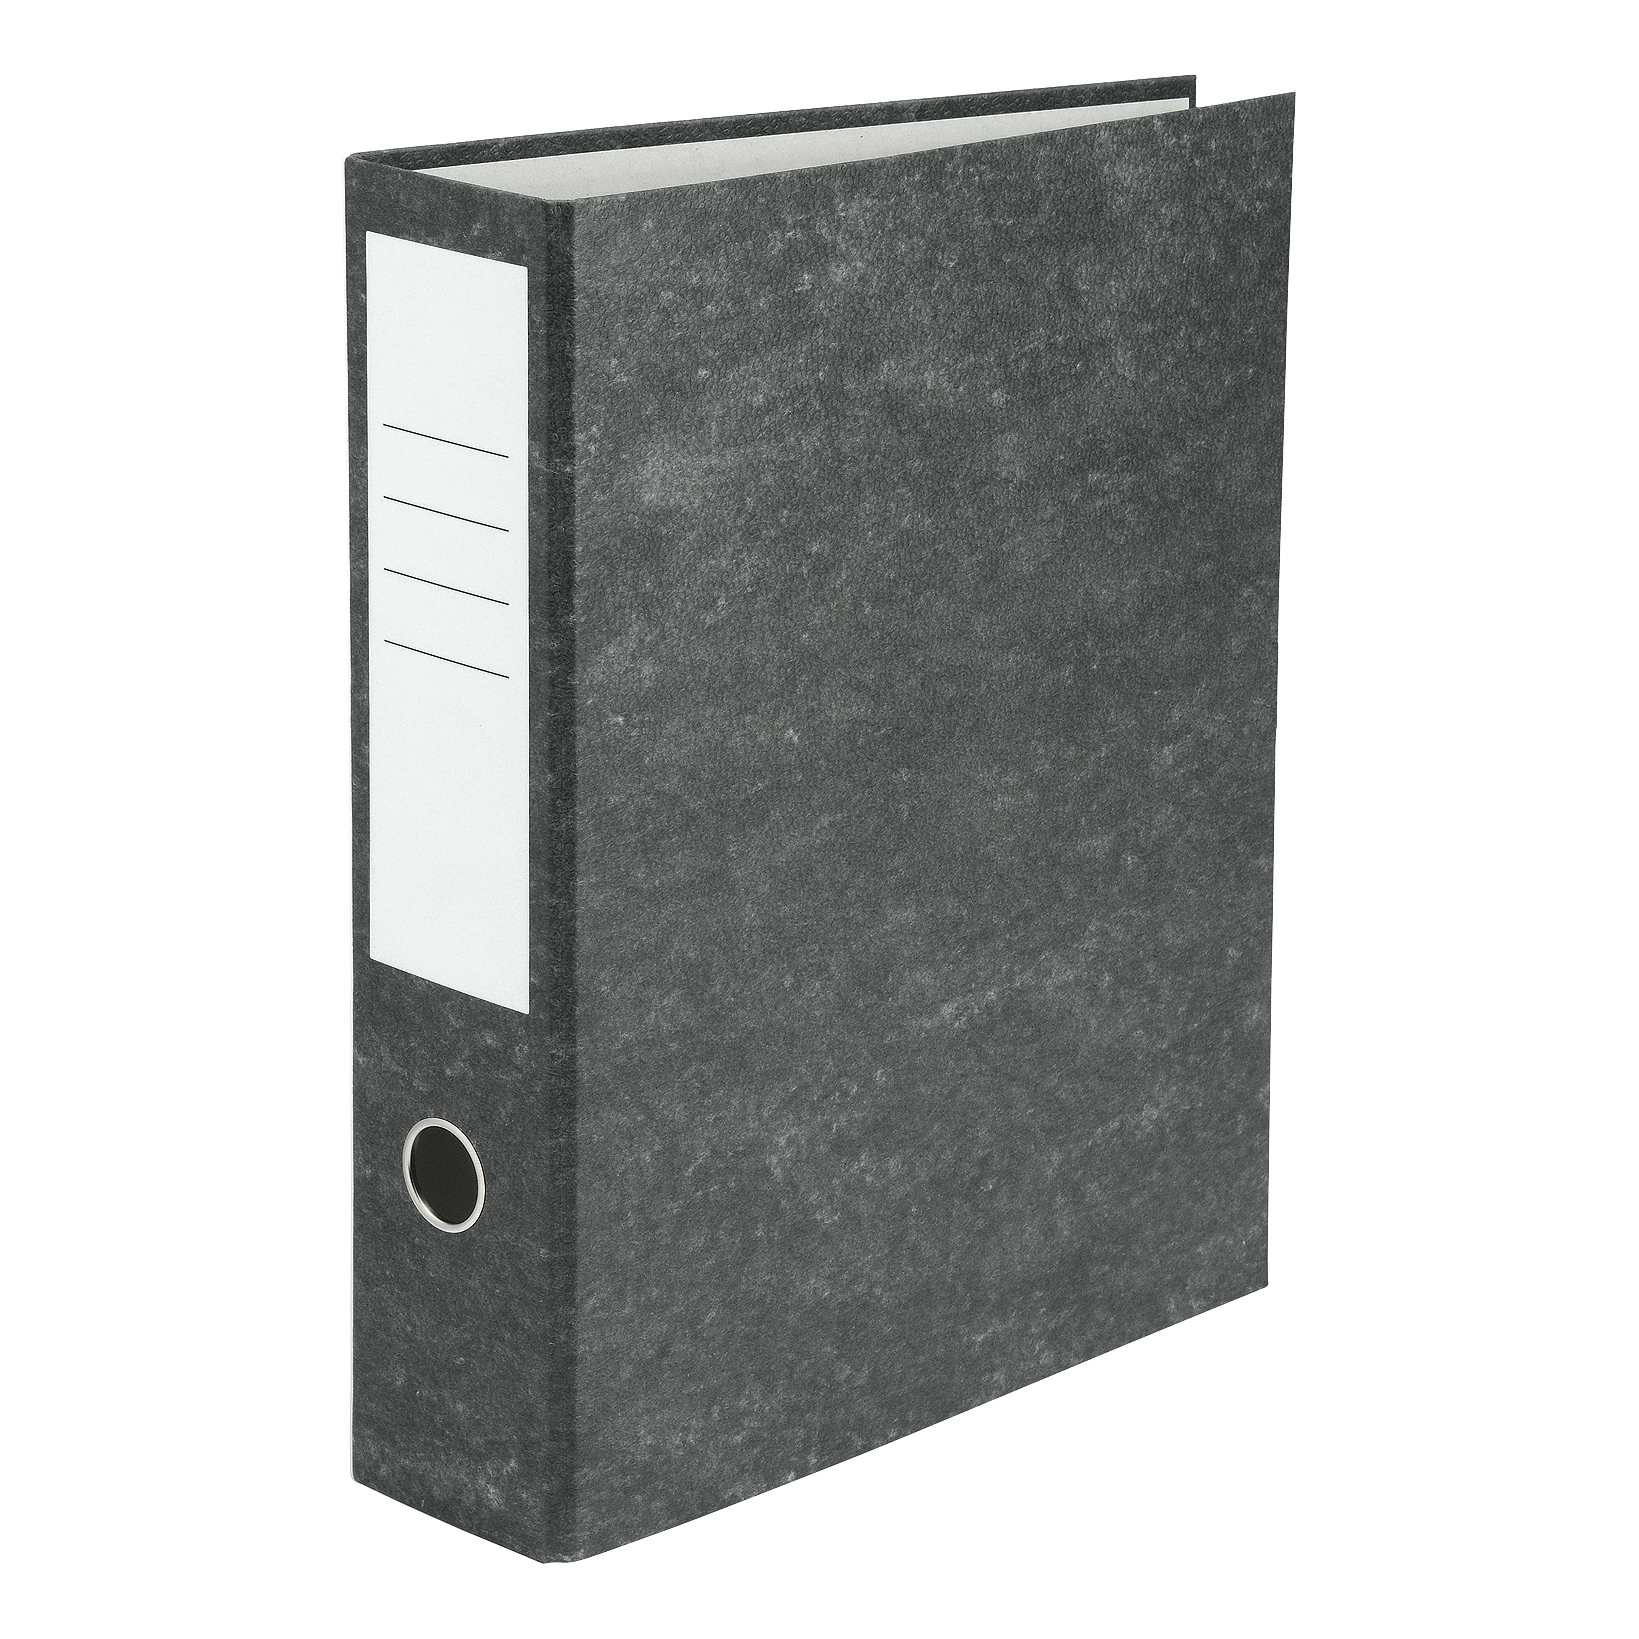 5 Star Value Lever Arch File Foolscap Ref 26815 Pack 10